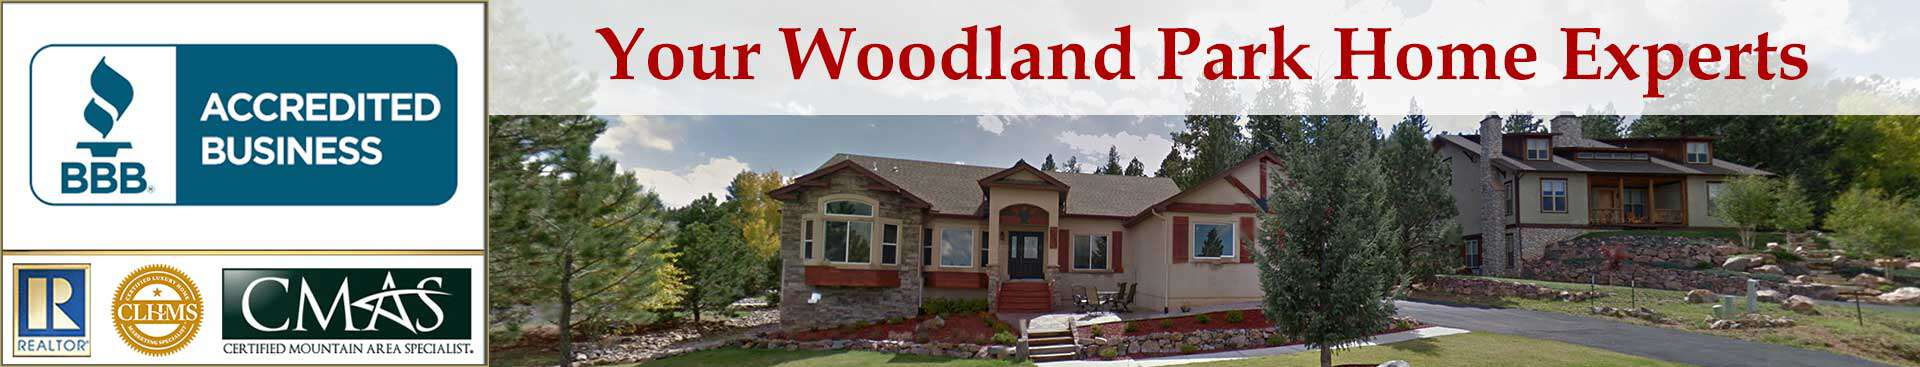 Woodland Park Accreditations Banner